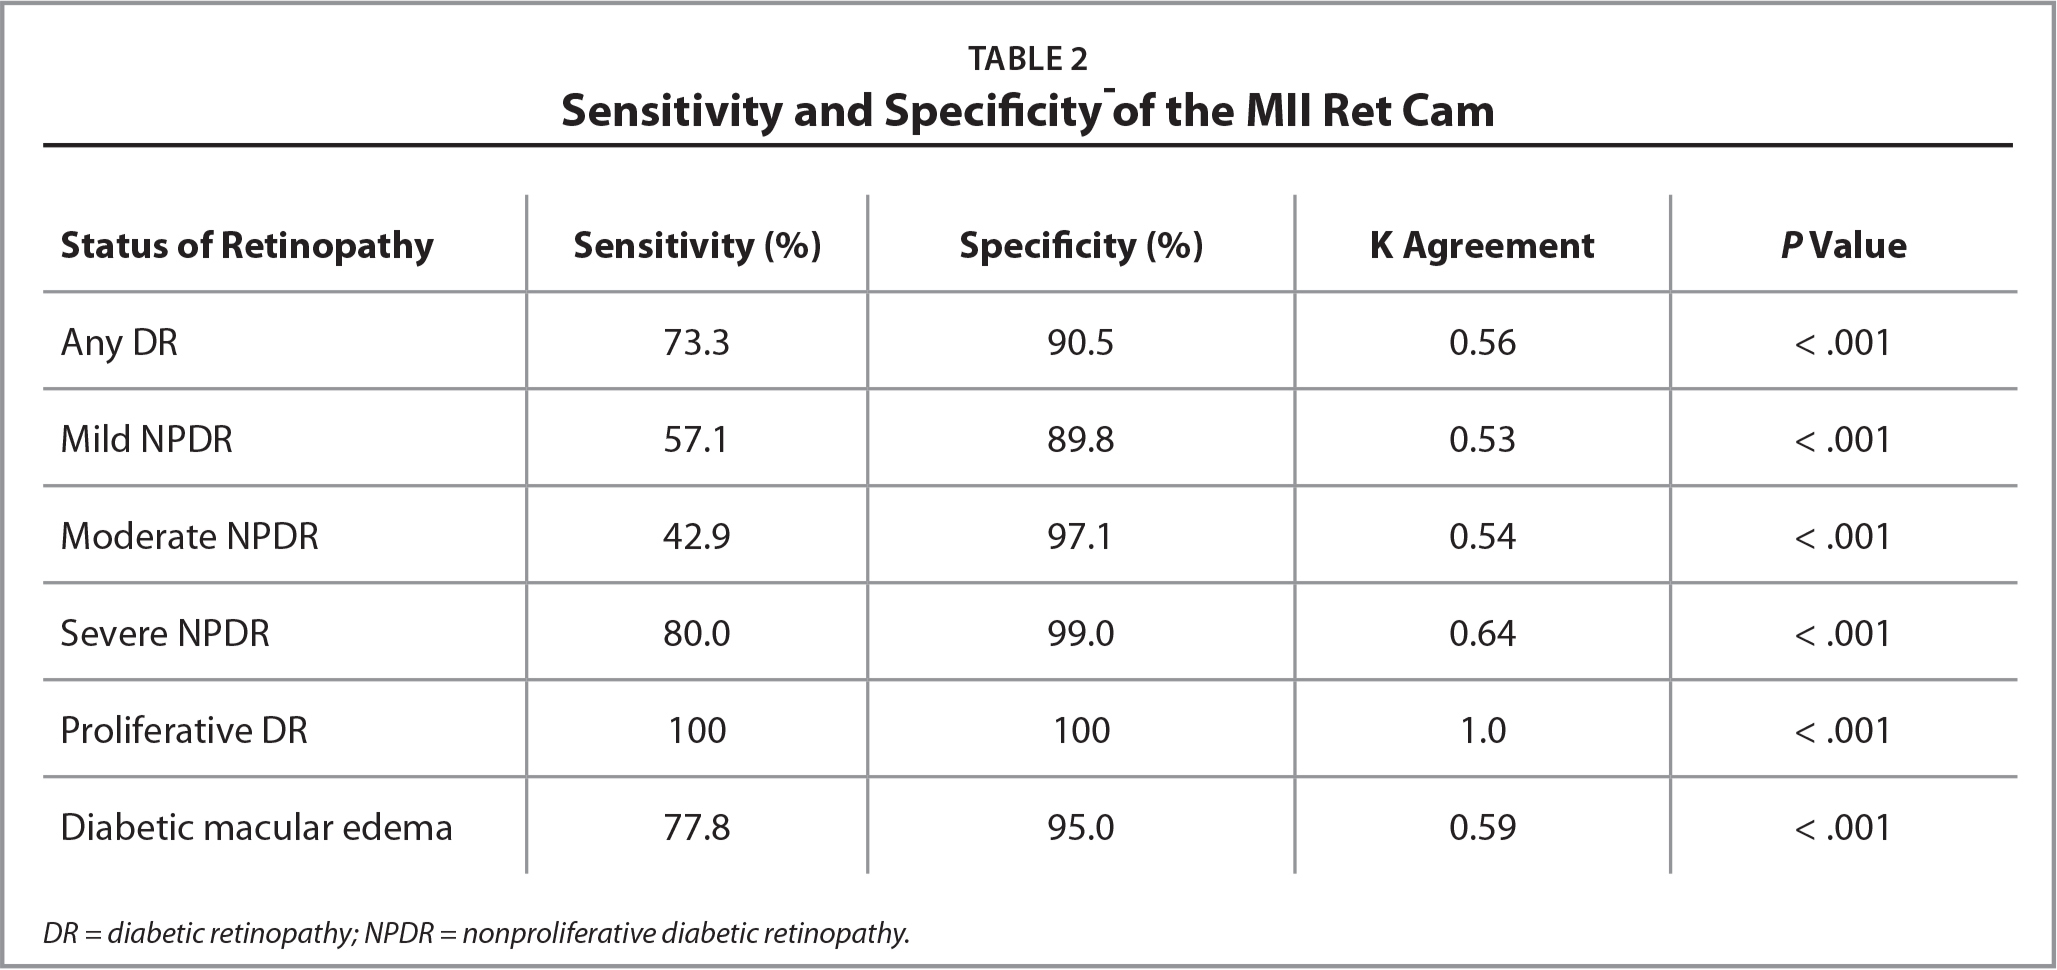 Sensitivity and Specificity of the MII Ret Cam